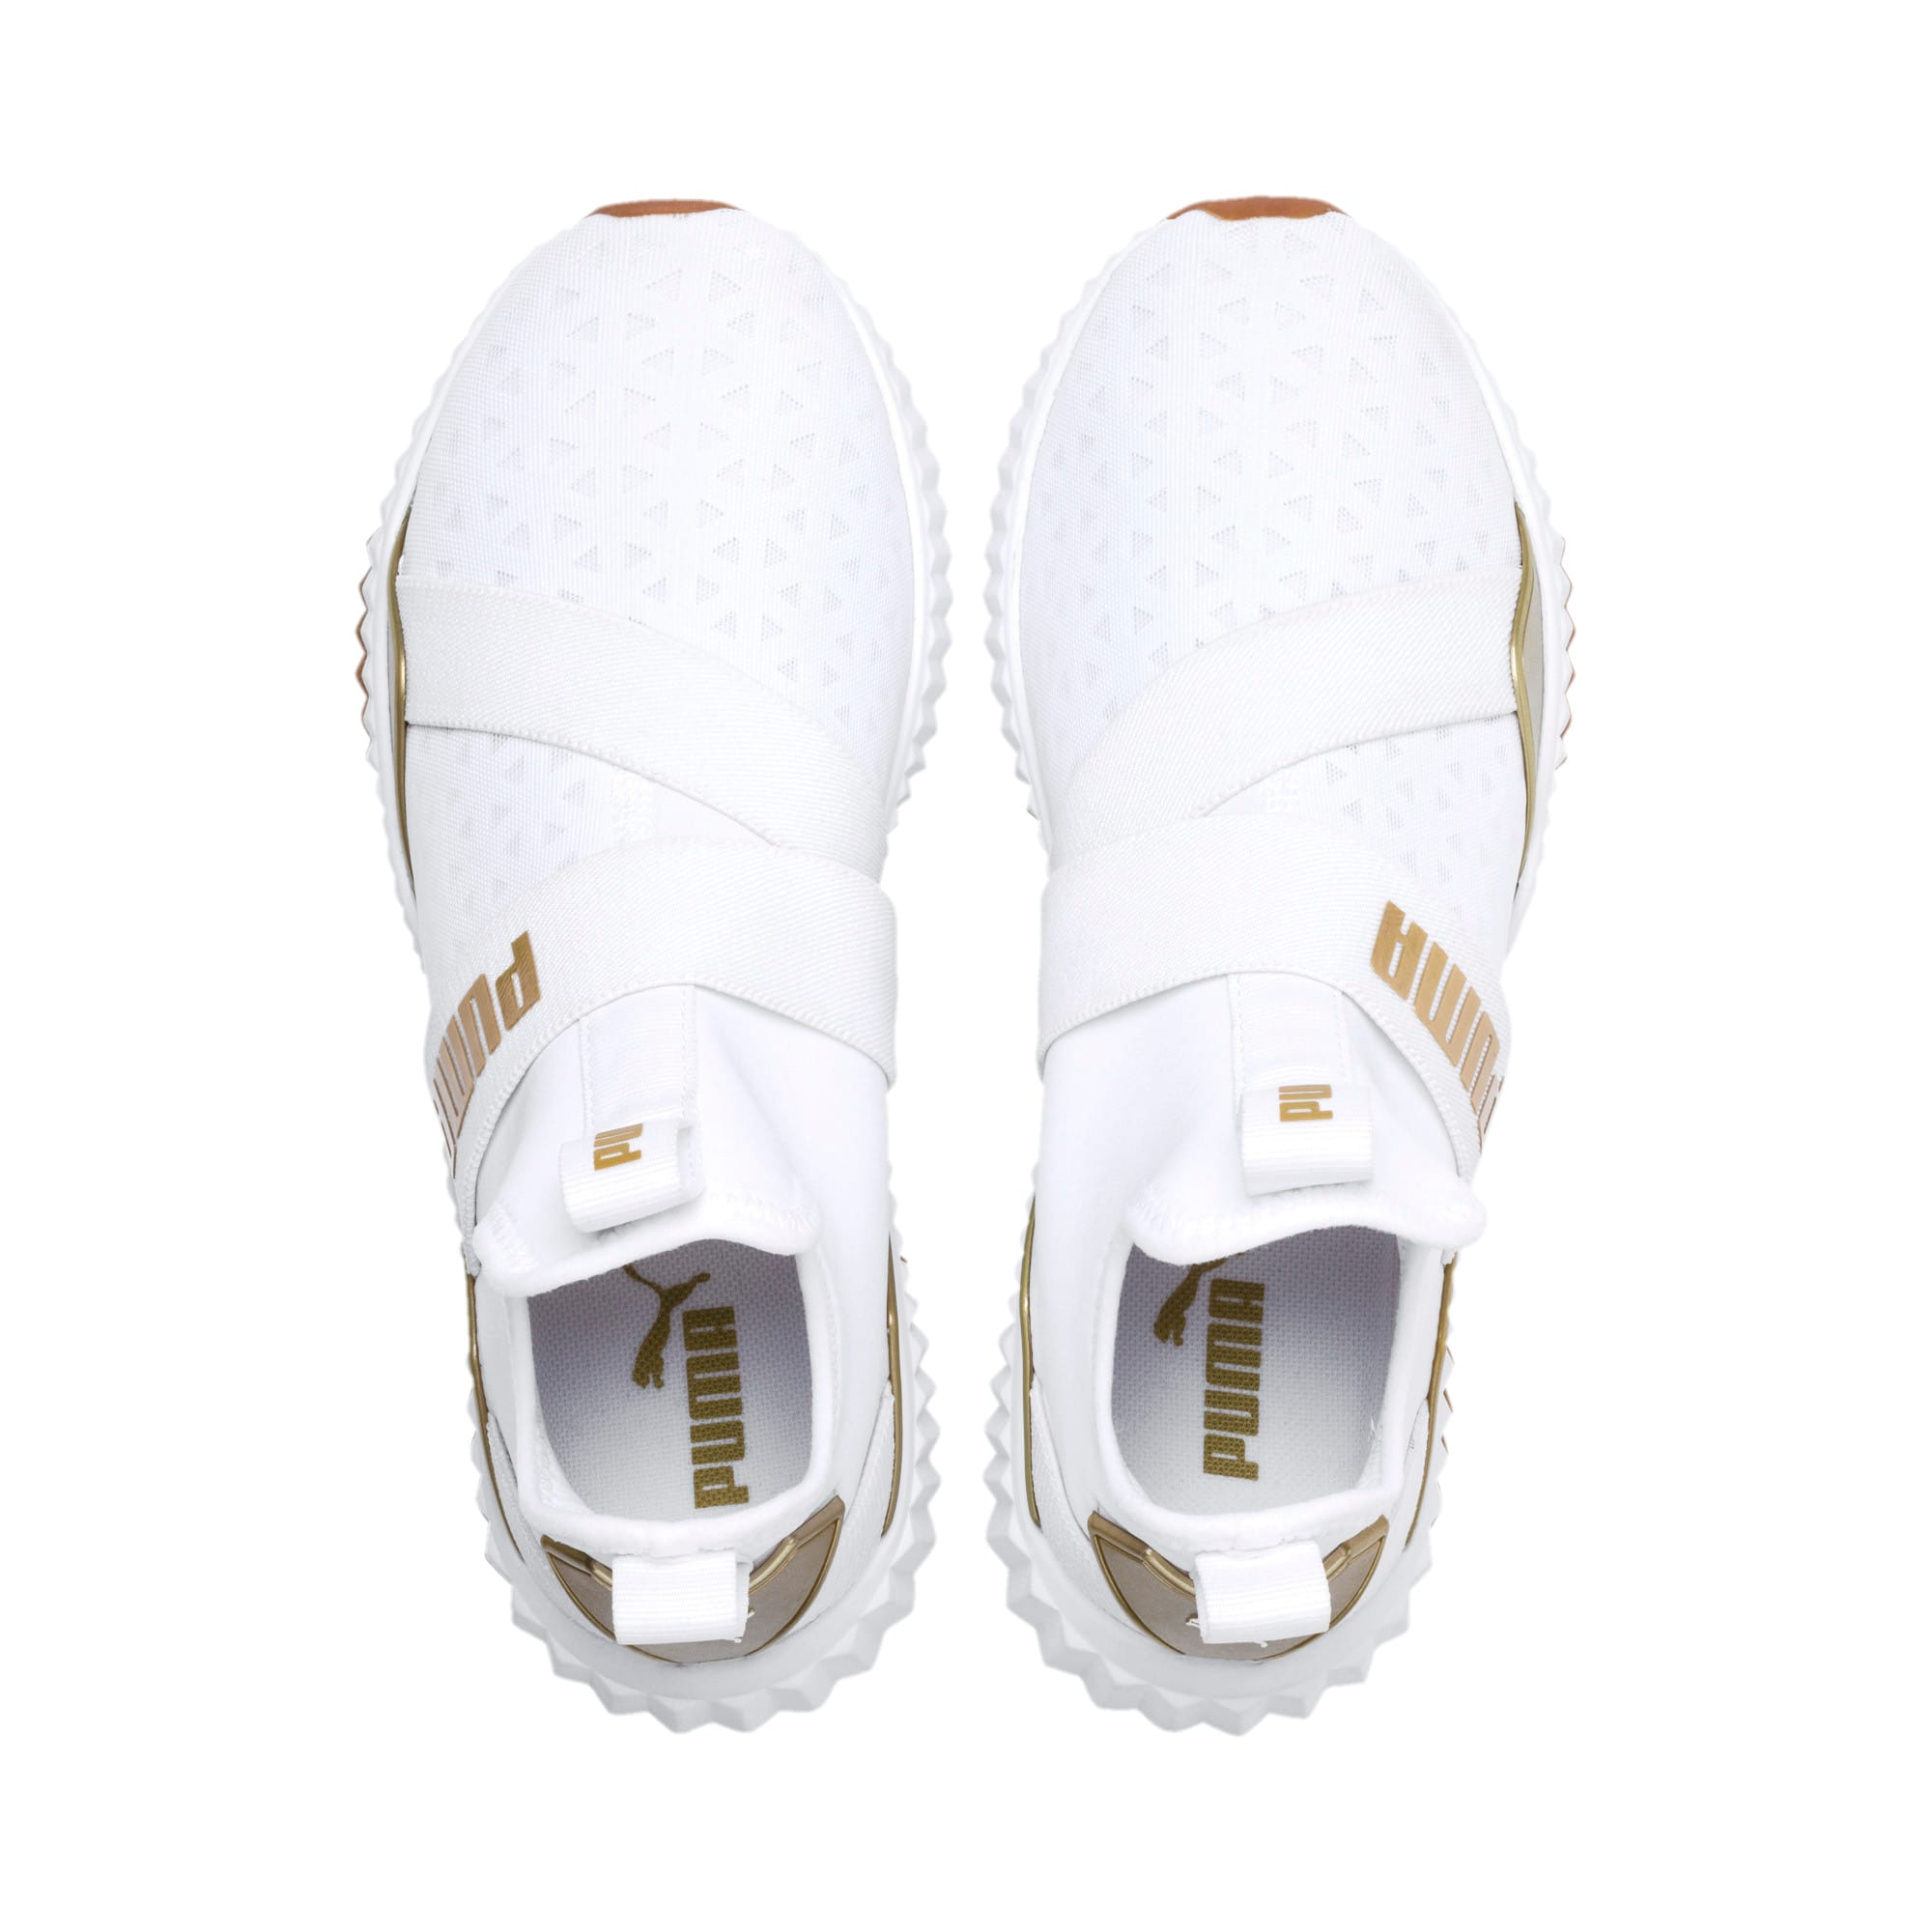 Defy Mid Sparkle Women's Trainers, Puma White-Metallic Gold, large